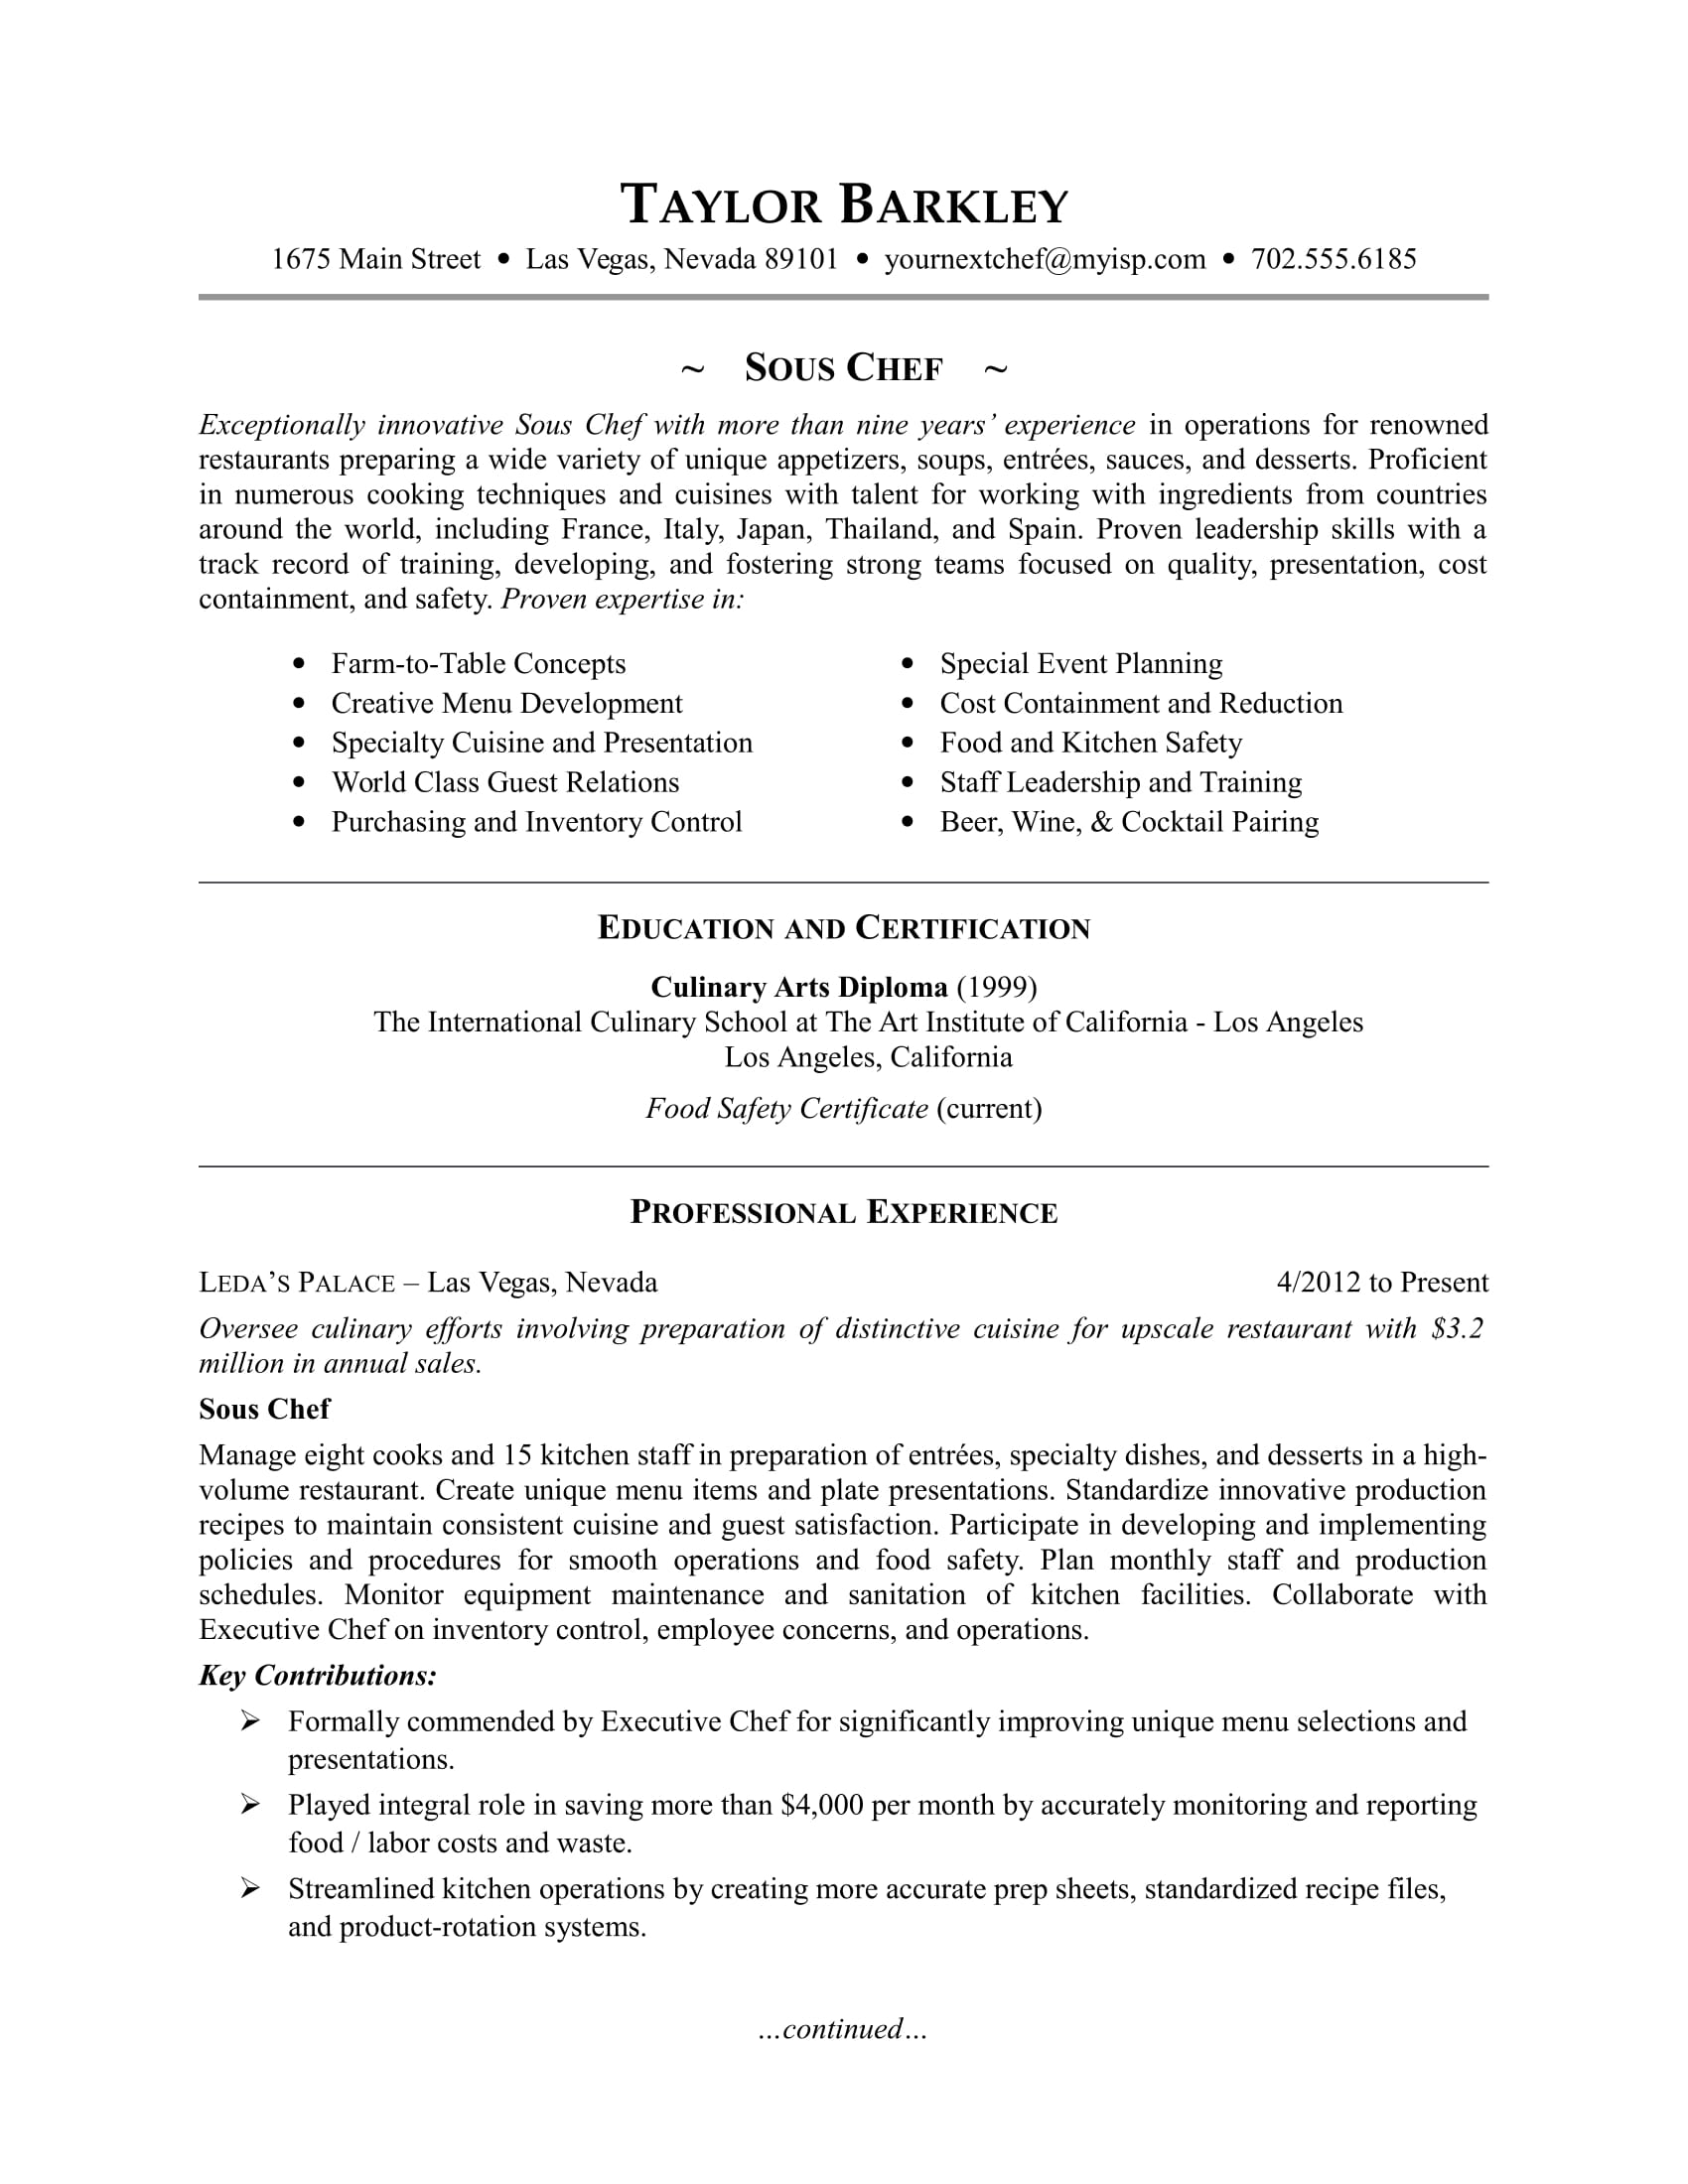 Captivating Sample Resume For A Sous Chef With Sous Chef Resume